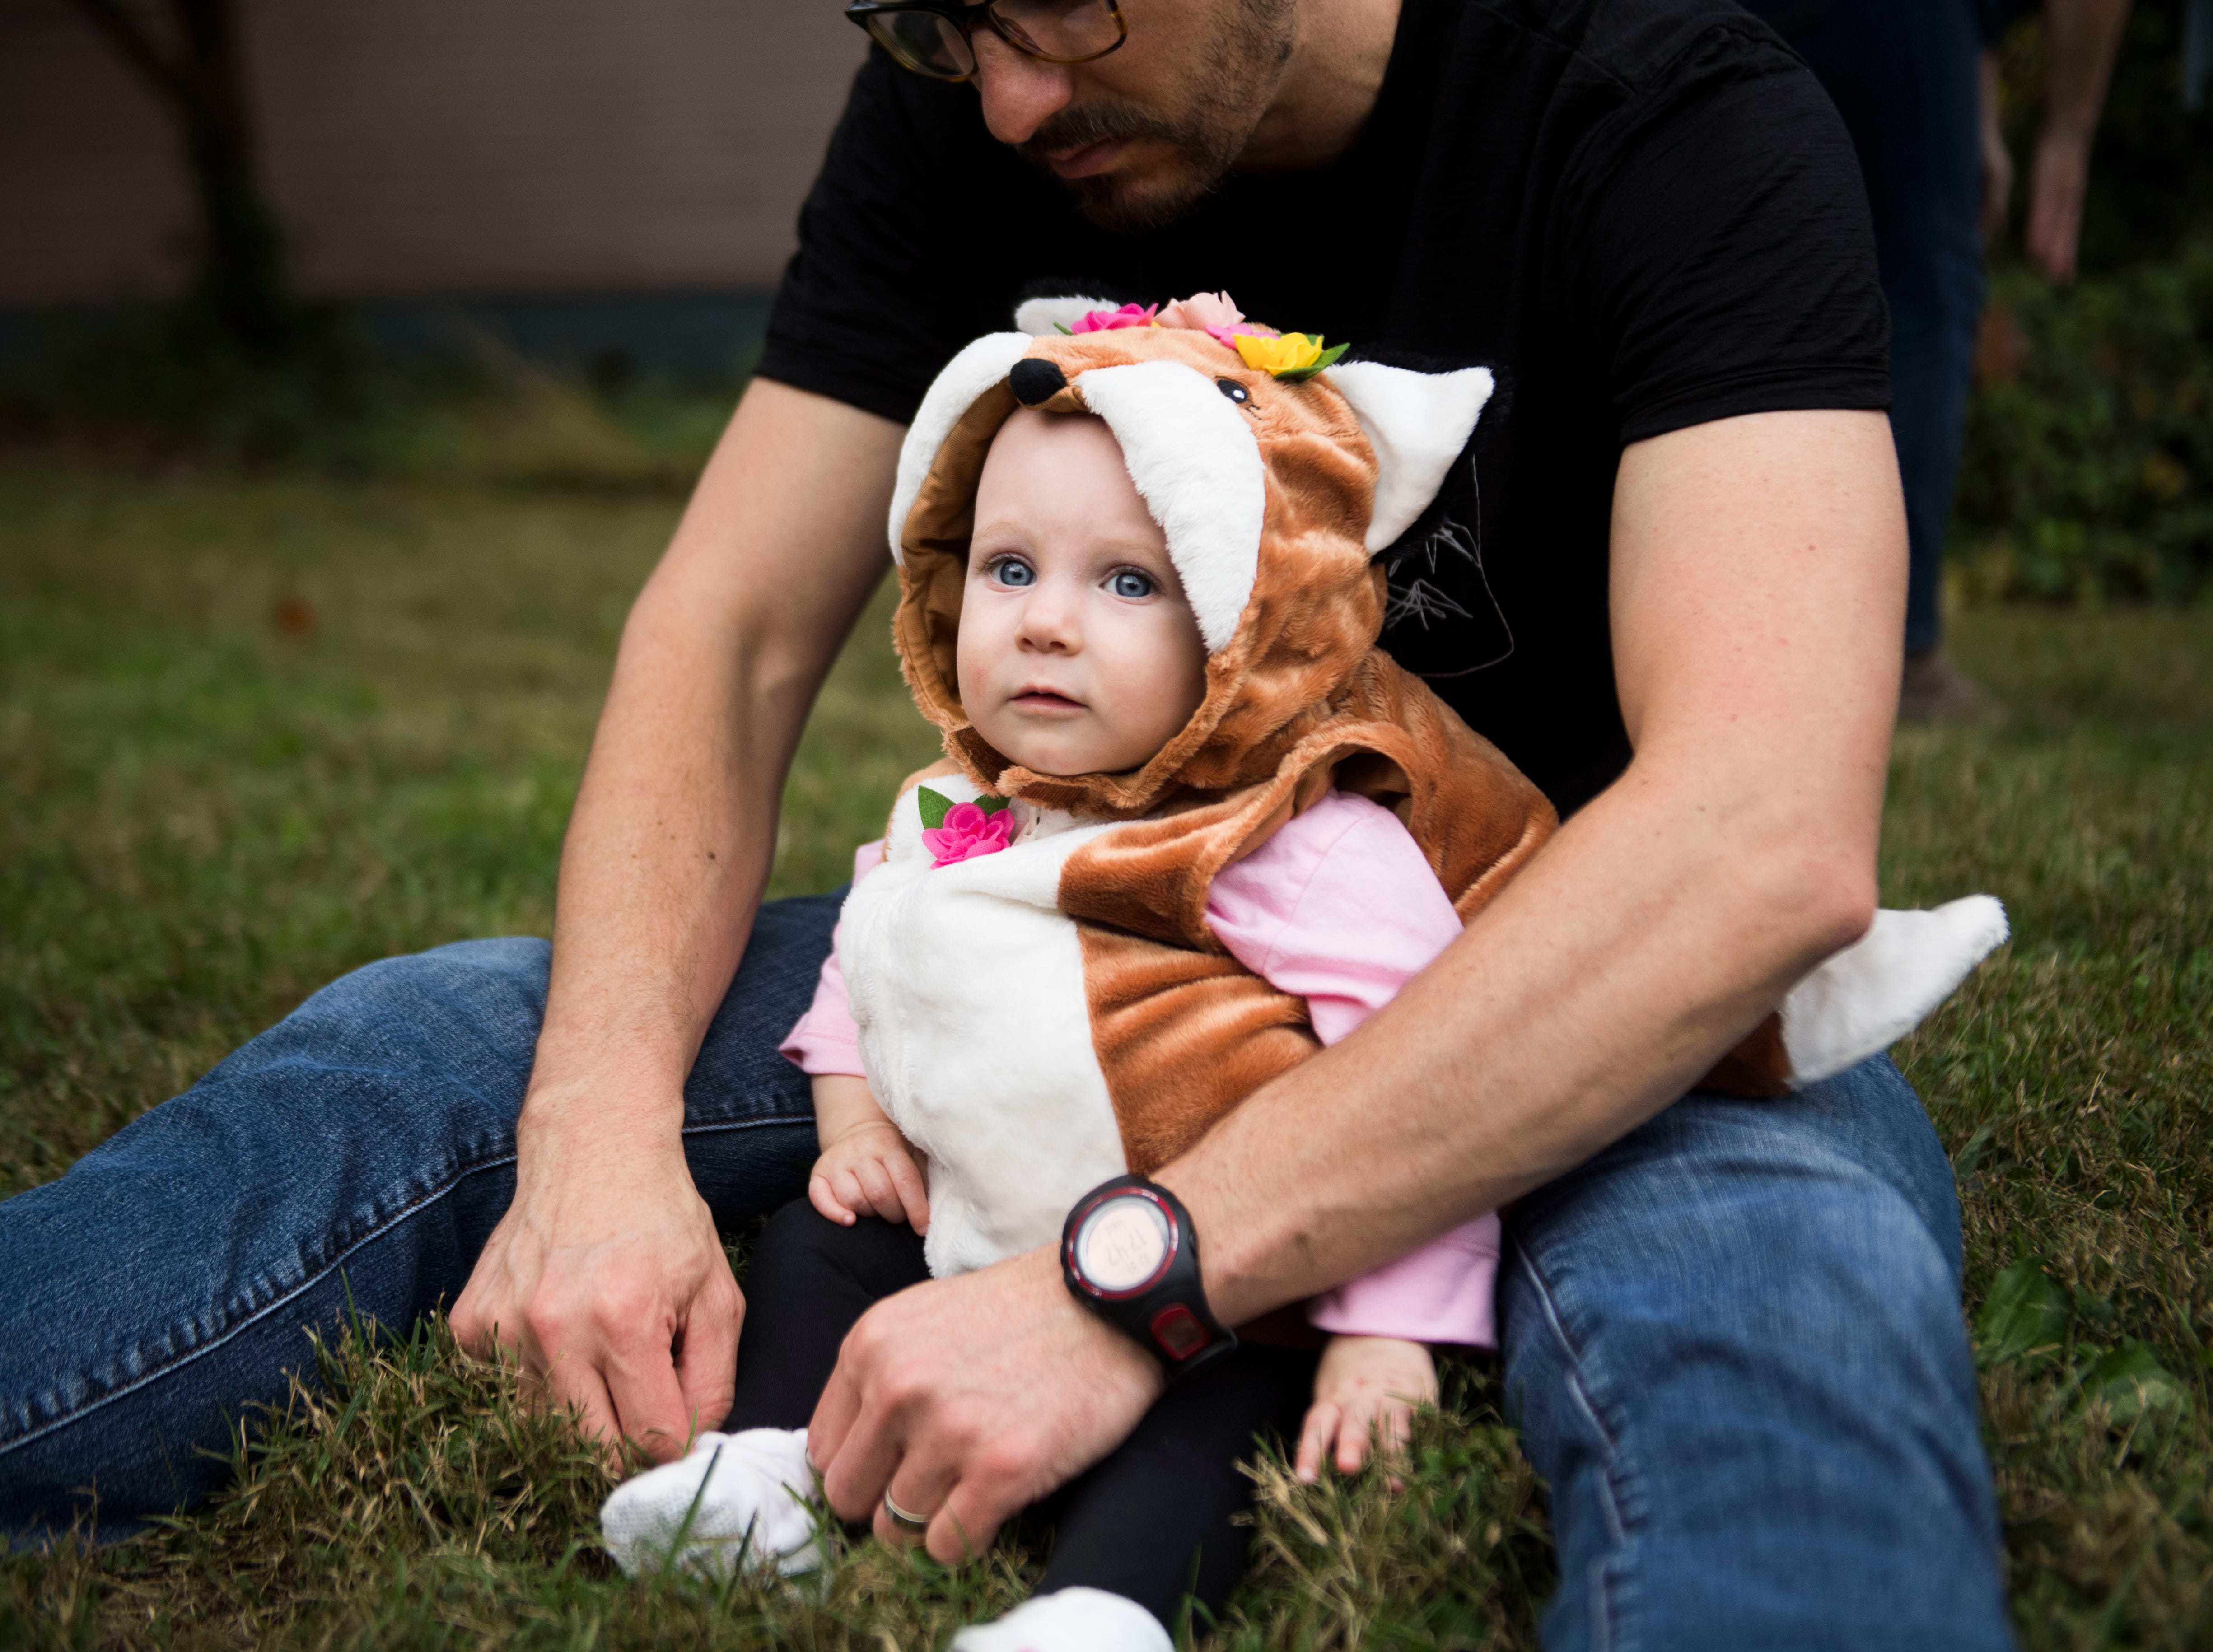 Joel Stefanini adjusts the costume of his daughter Lia, 1, at the Fourth and Gill neighborhood Halloween party in Knoxville, Wed. Oct. 31, 2018.